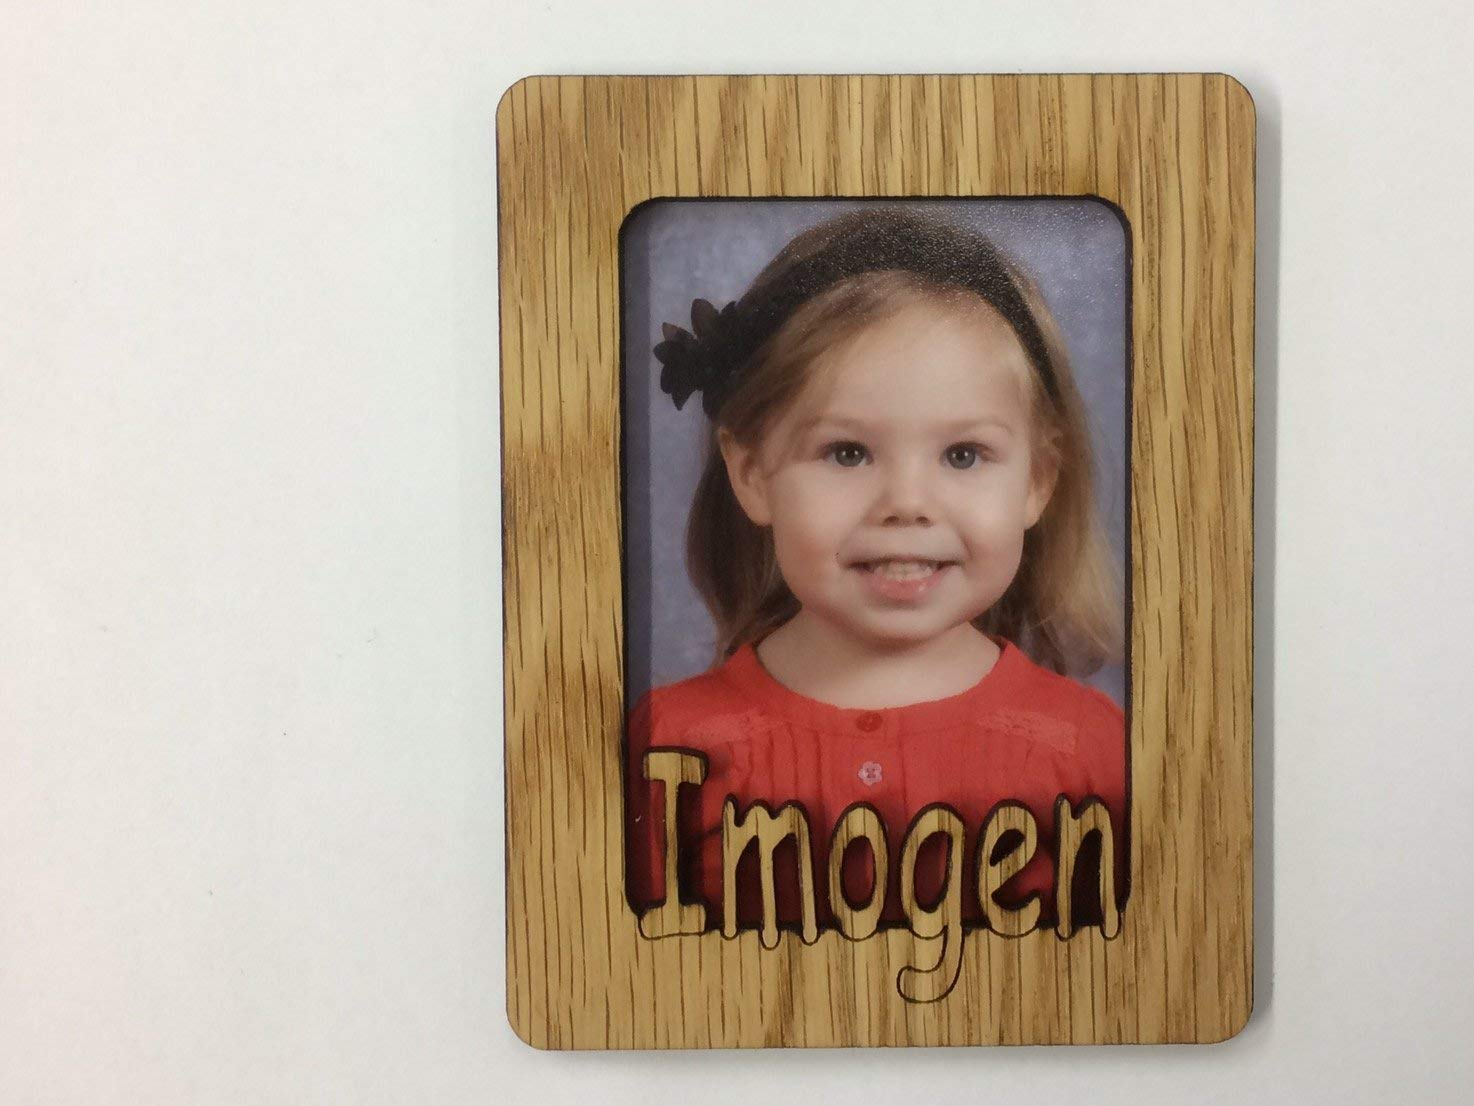 Personalized Wood Name Picture Frame Refrigerator Magnet - Holds Wallet Sized Photo